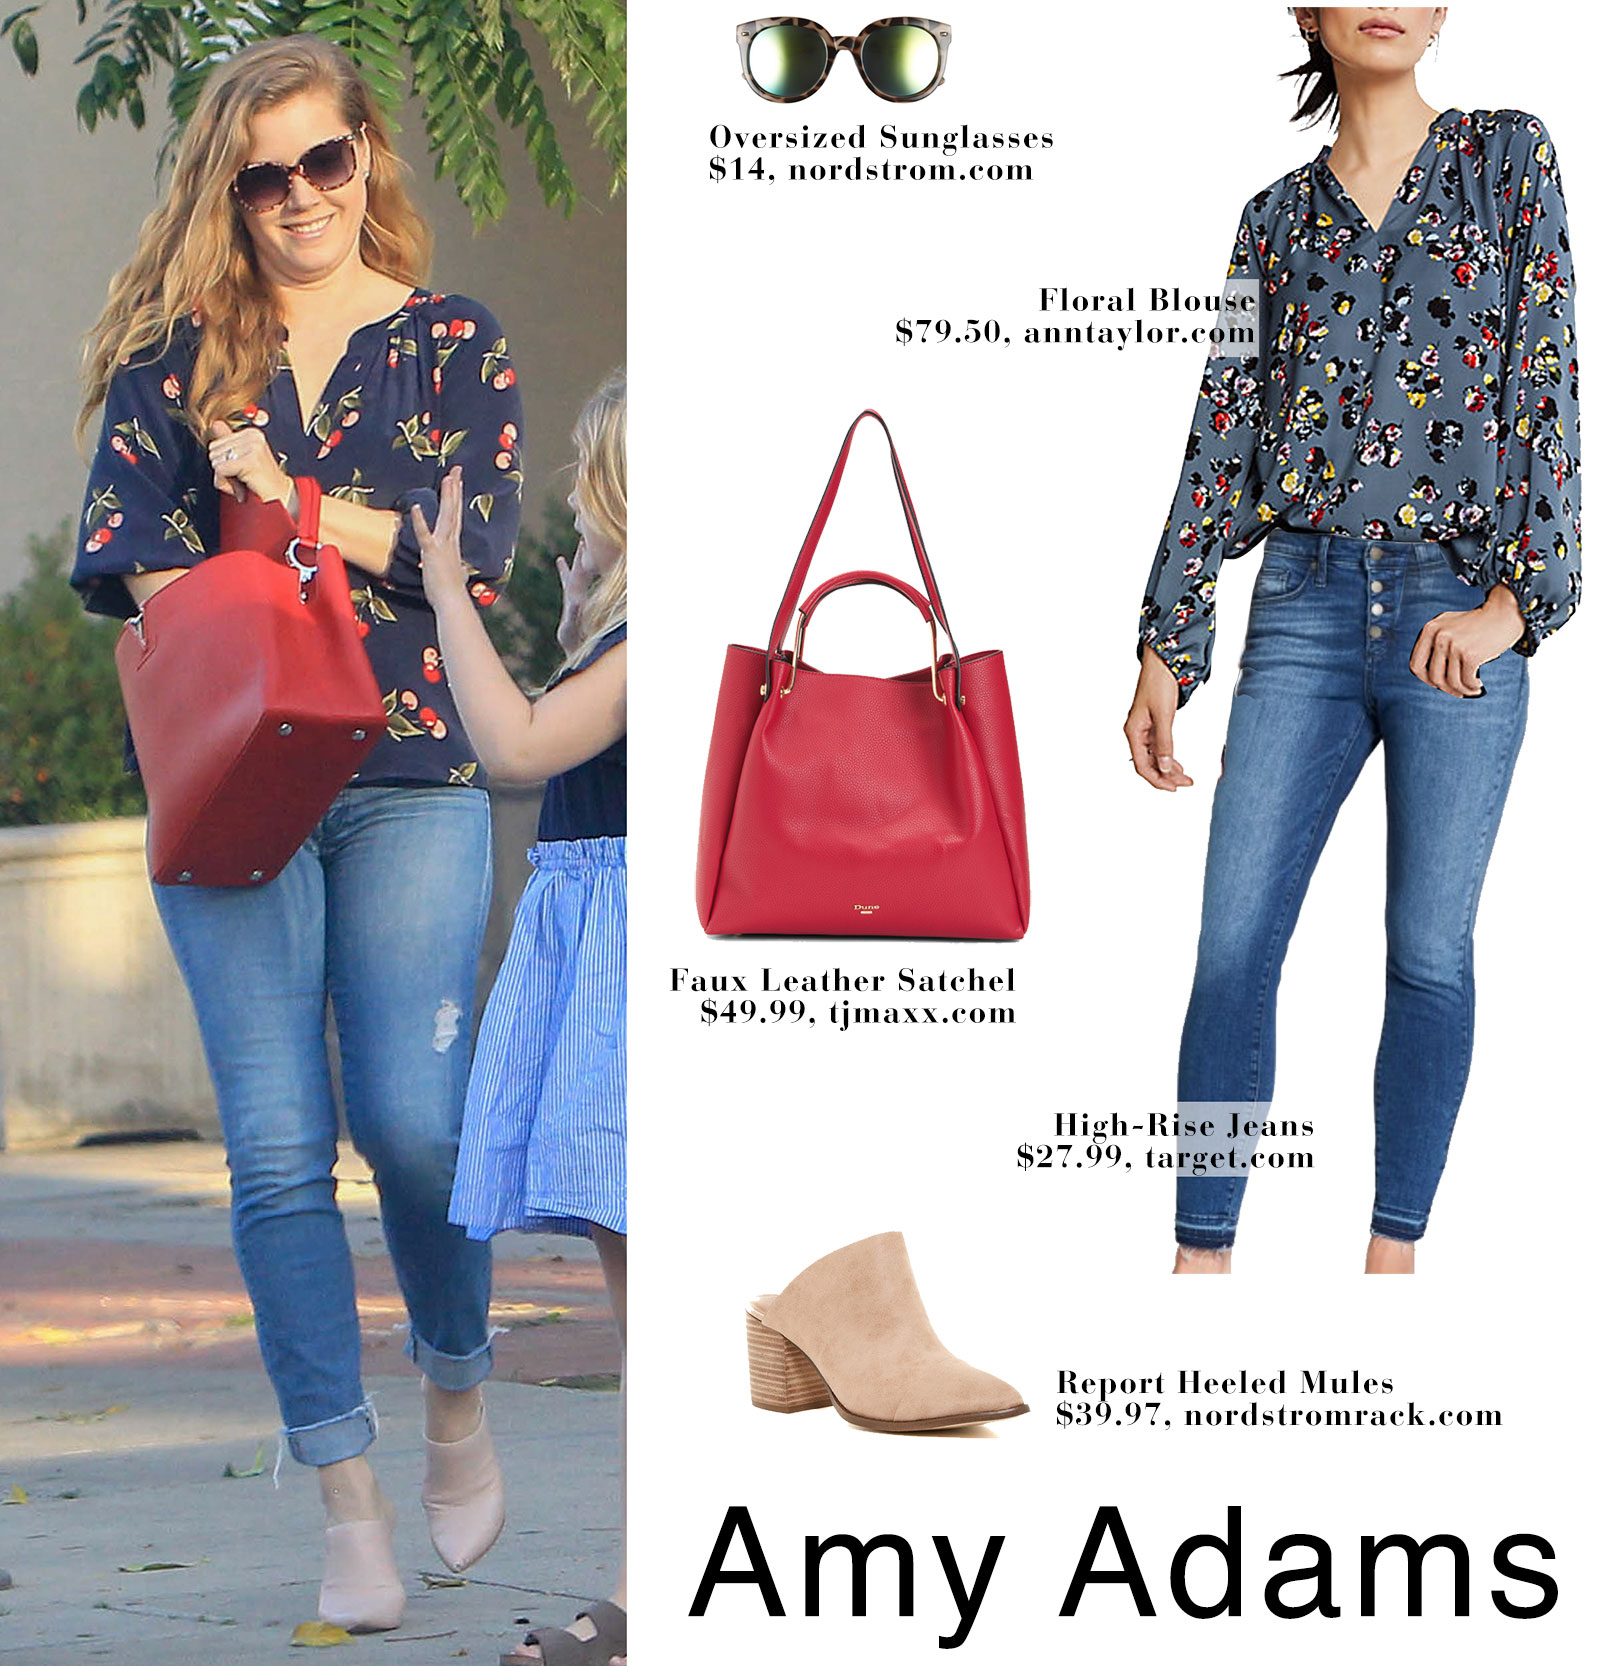 Amy Adams' wears a Joie cherry print blouse with jeans and nude mule heels.